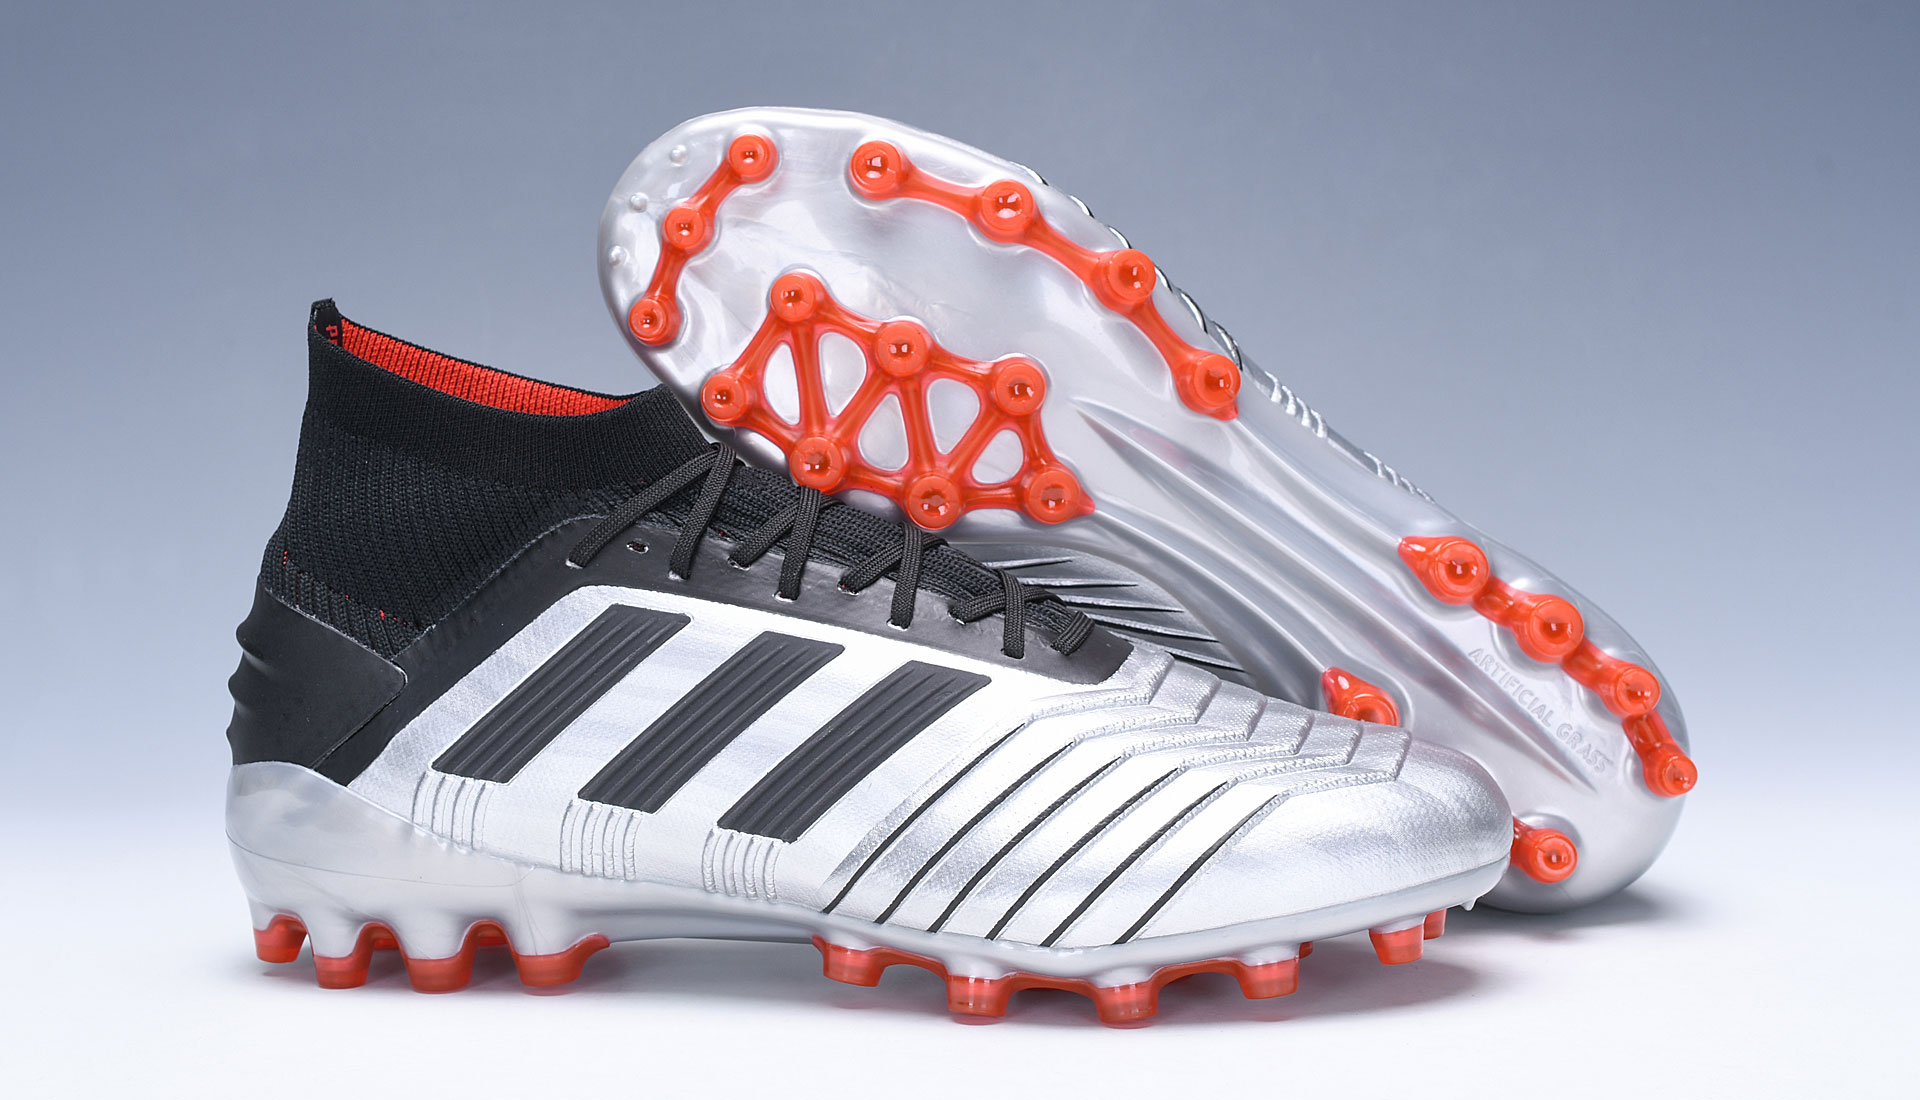 adidas Predator 19.1 AG Silver Red Football Boots right